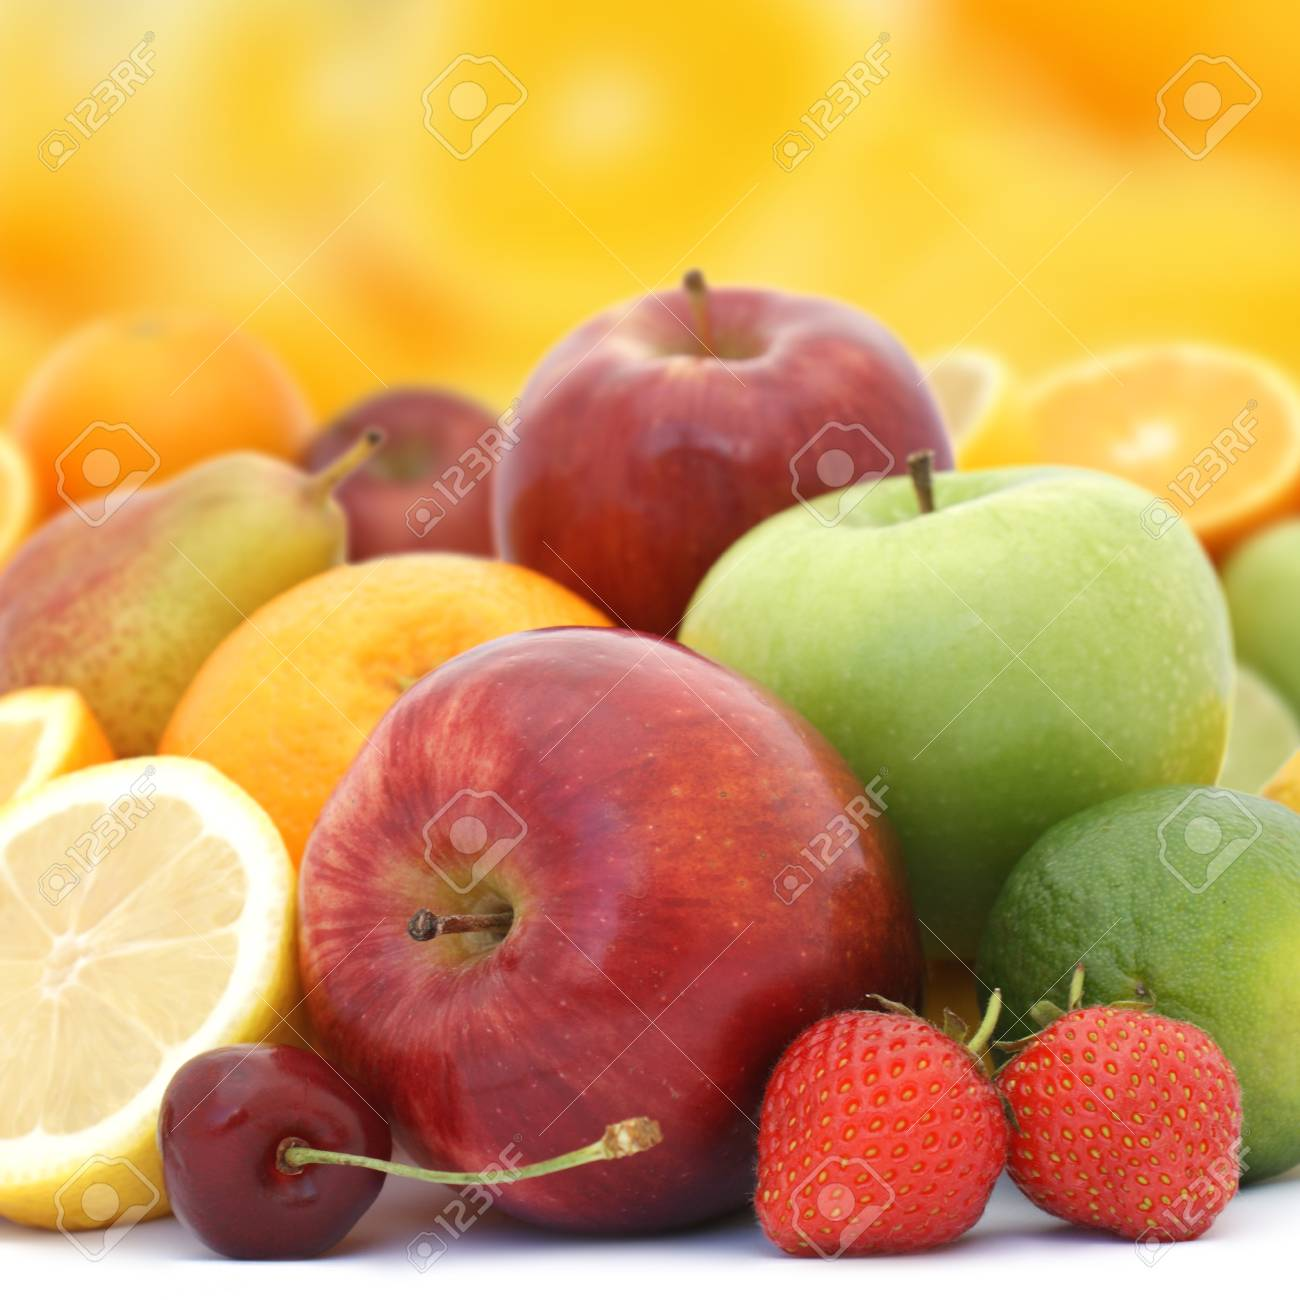 Display of fresh fruit on brightly coloured background Stock Photo - 8981489